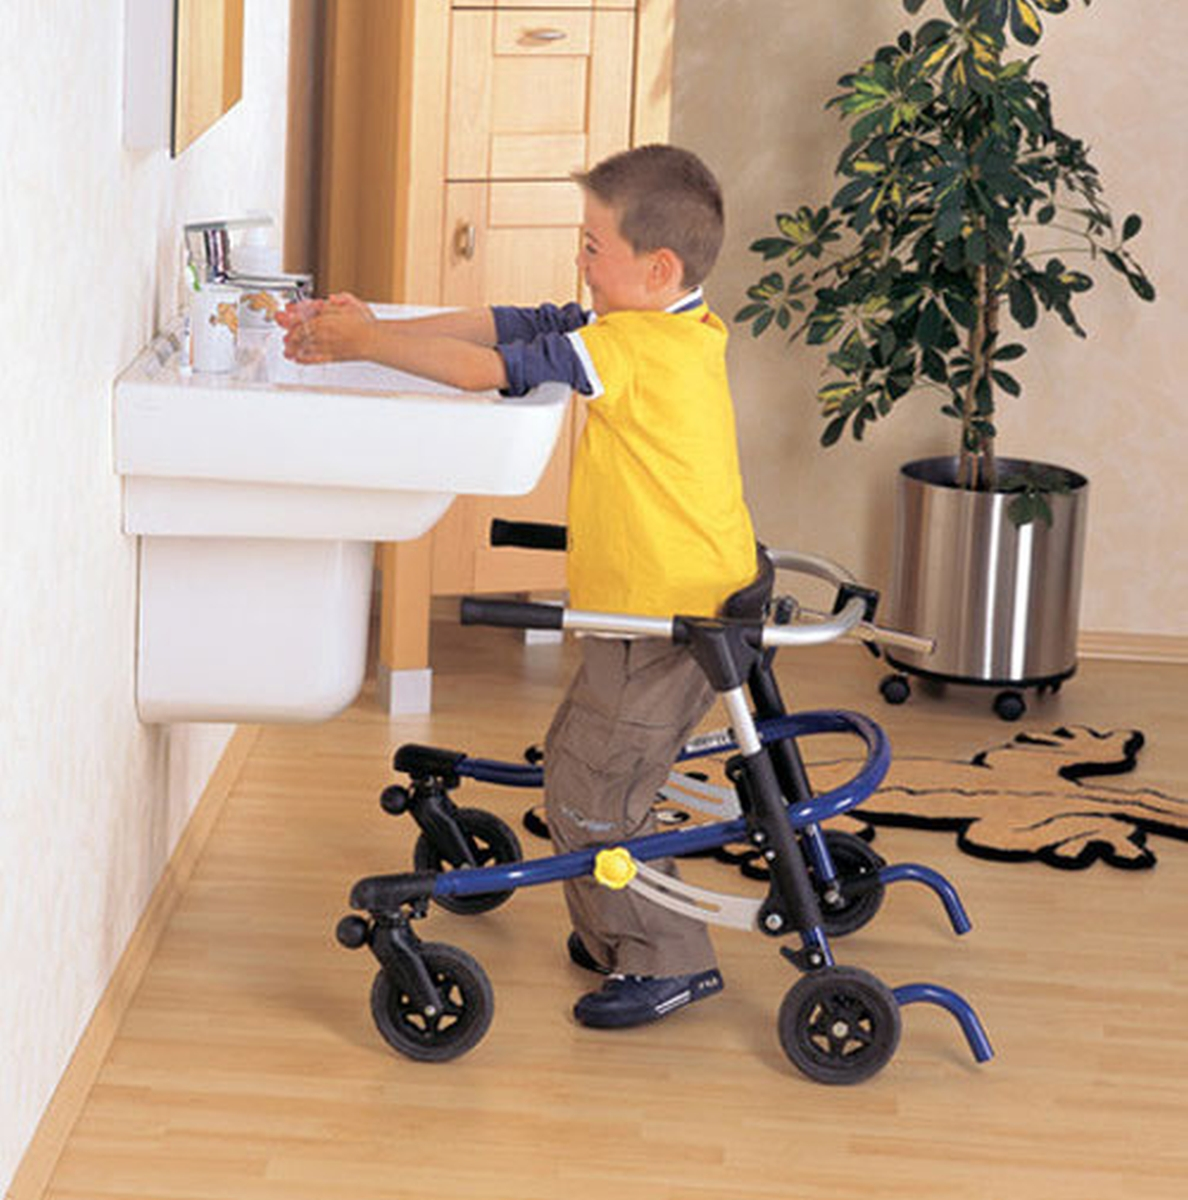 Orthotics For Children With Cerebral Palsy